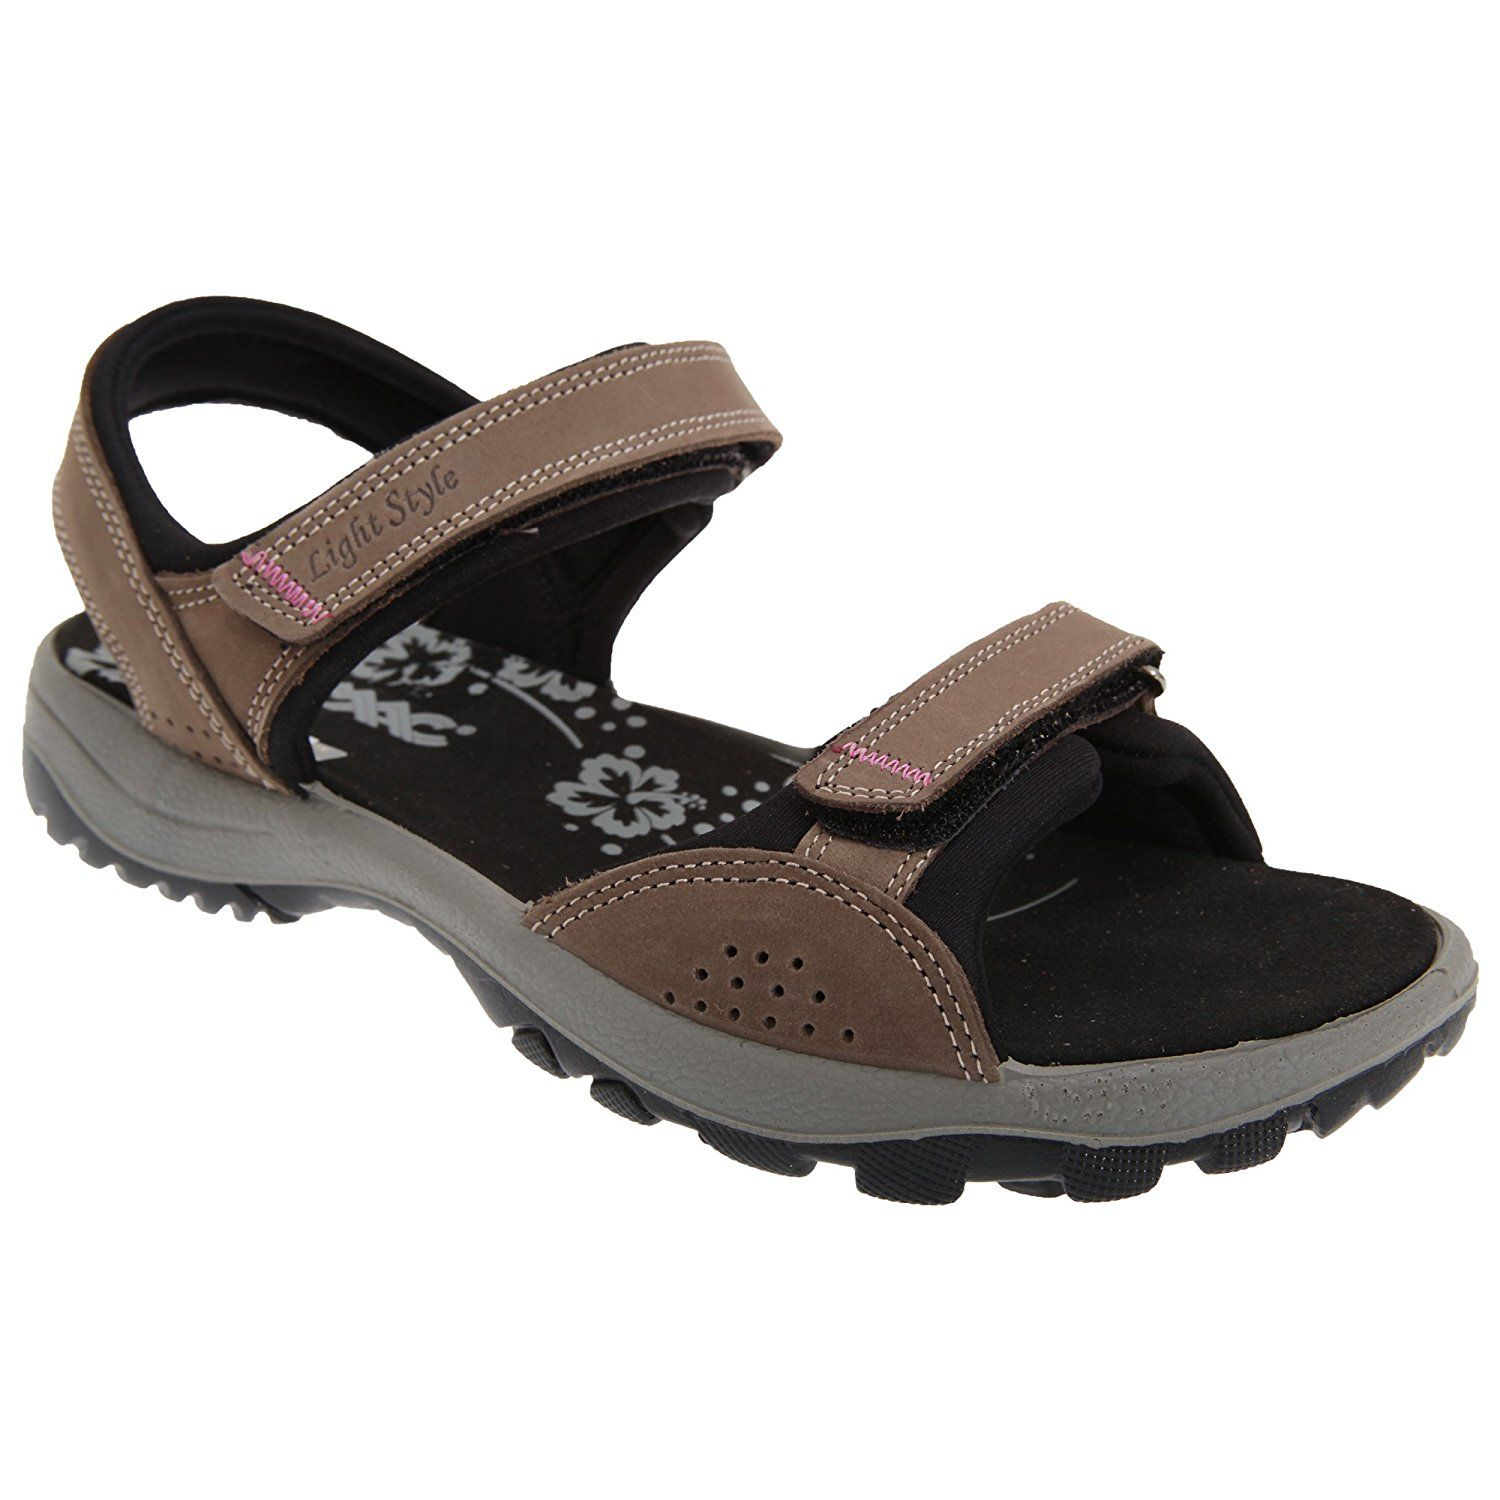 Womens/Ladies Nubuck Leather Two Touch Fastening Sports Sandals (11 US) (Brown)